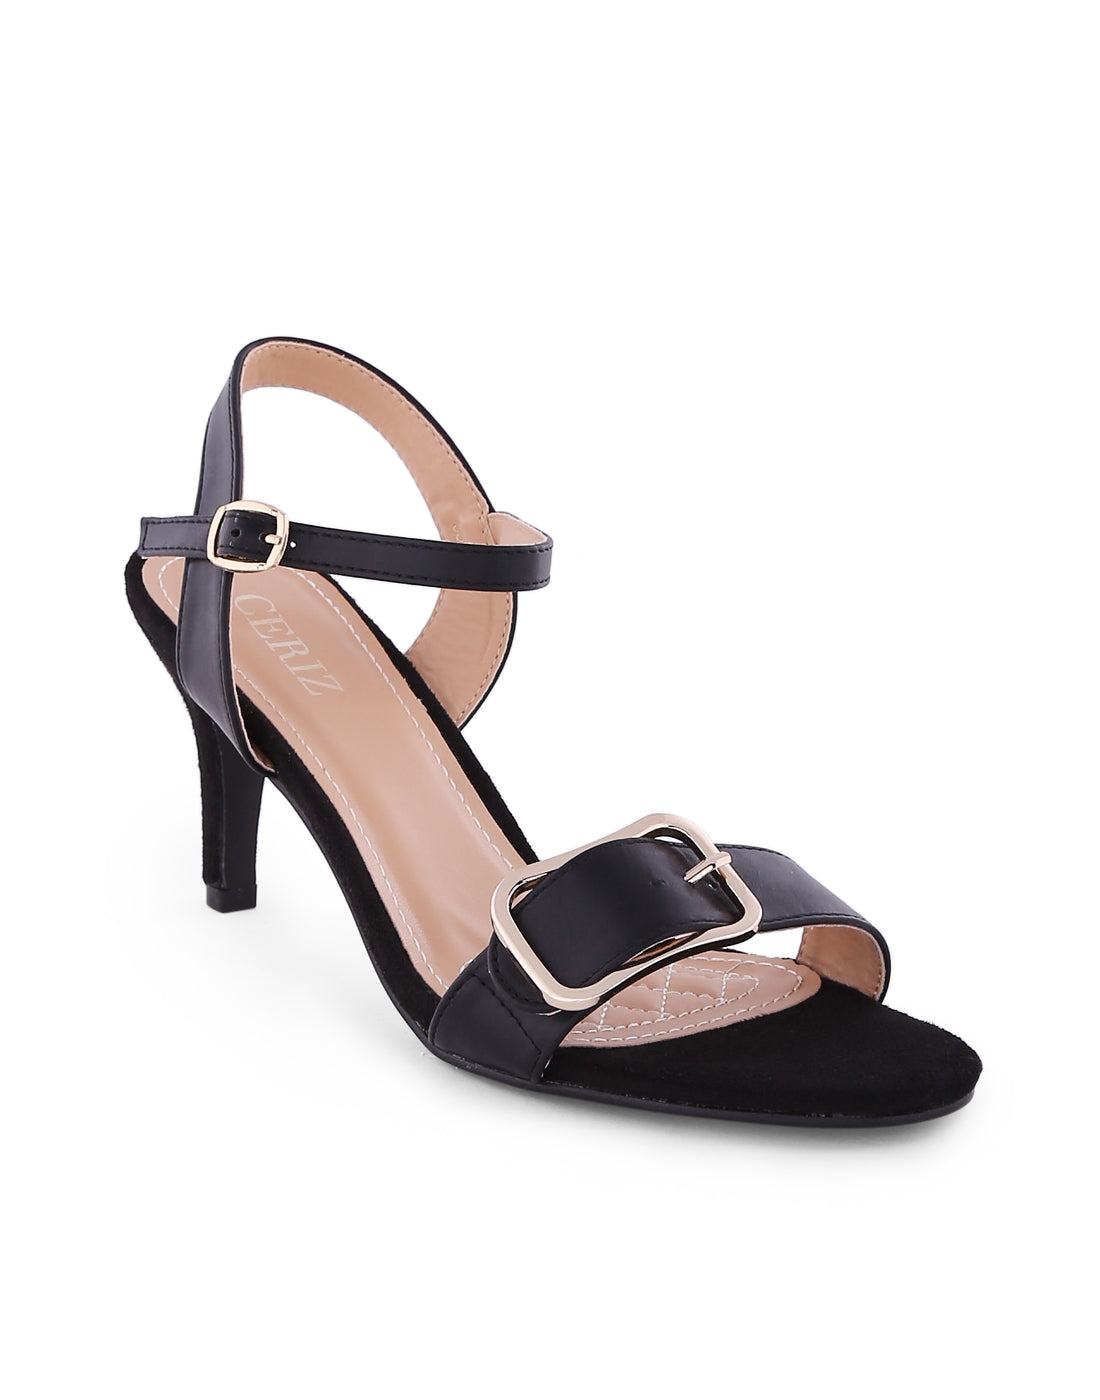 Giannaa Black Gold Buckled Sandals